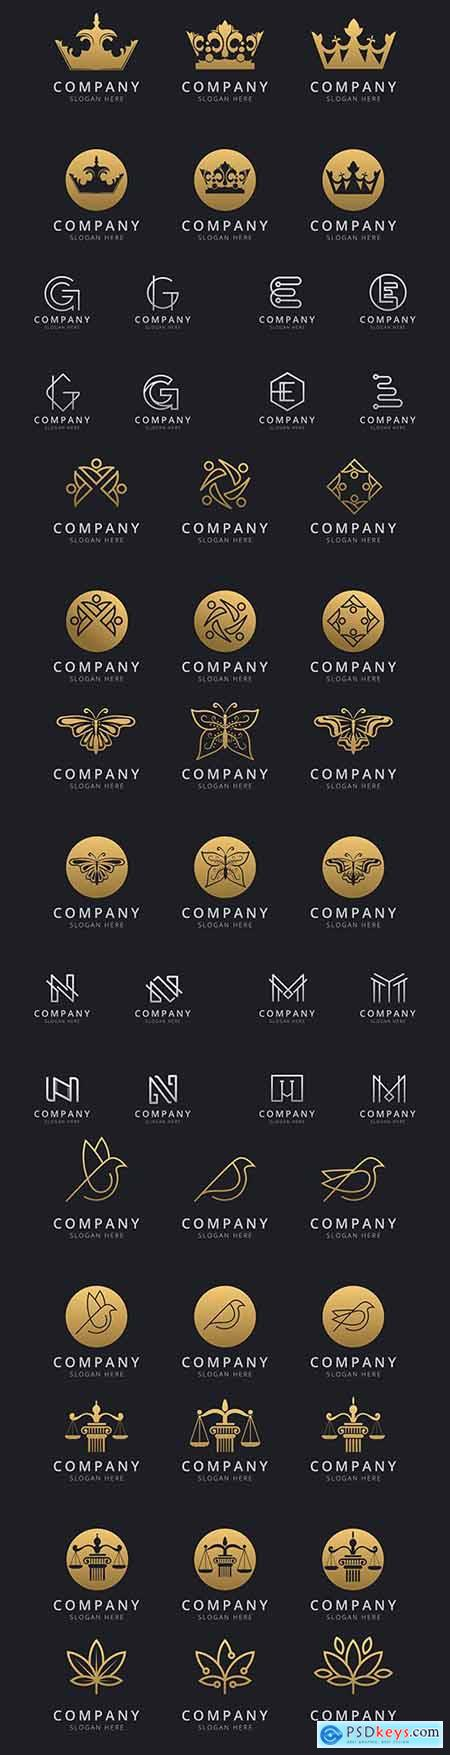 Brand name company logos business corporate design 36